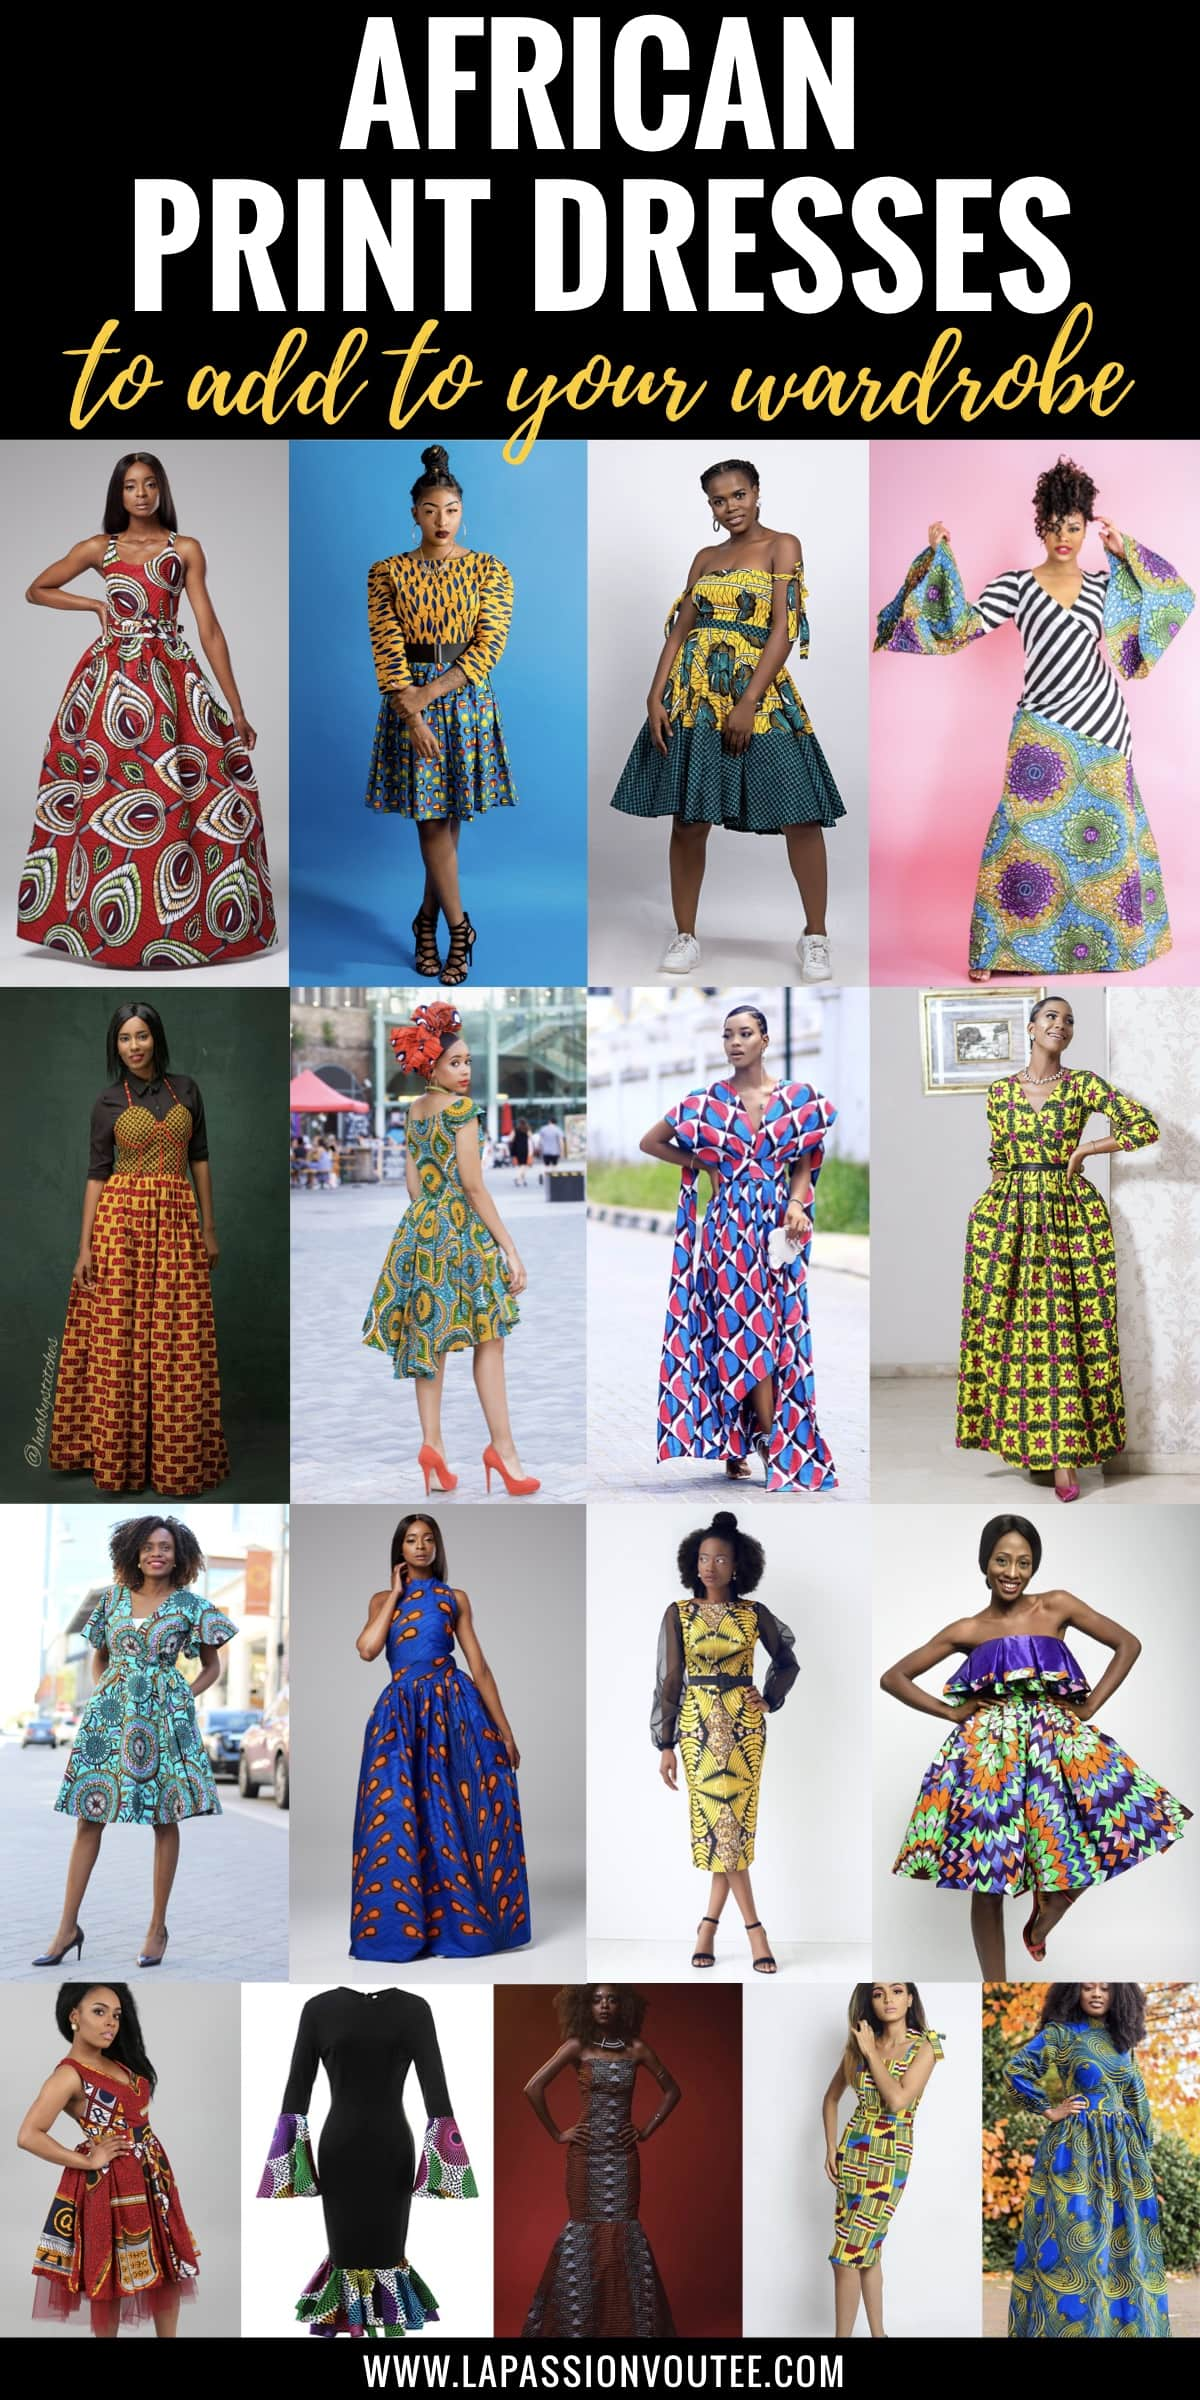 b411da3d66 50+ Best African Print Dresses [& where to get them]